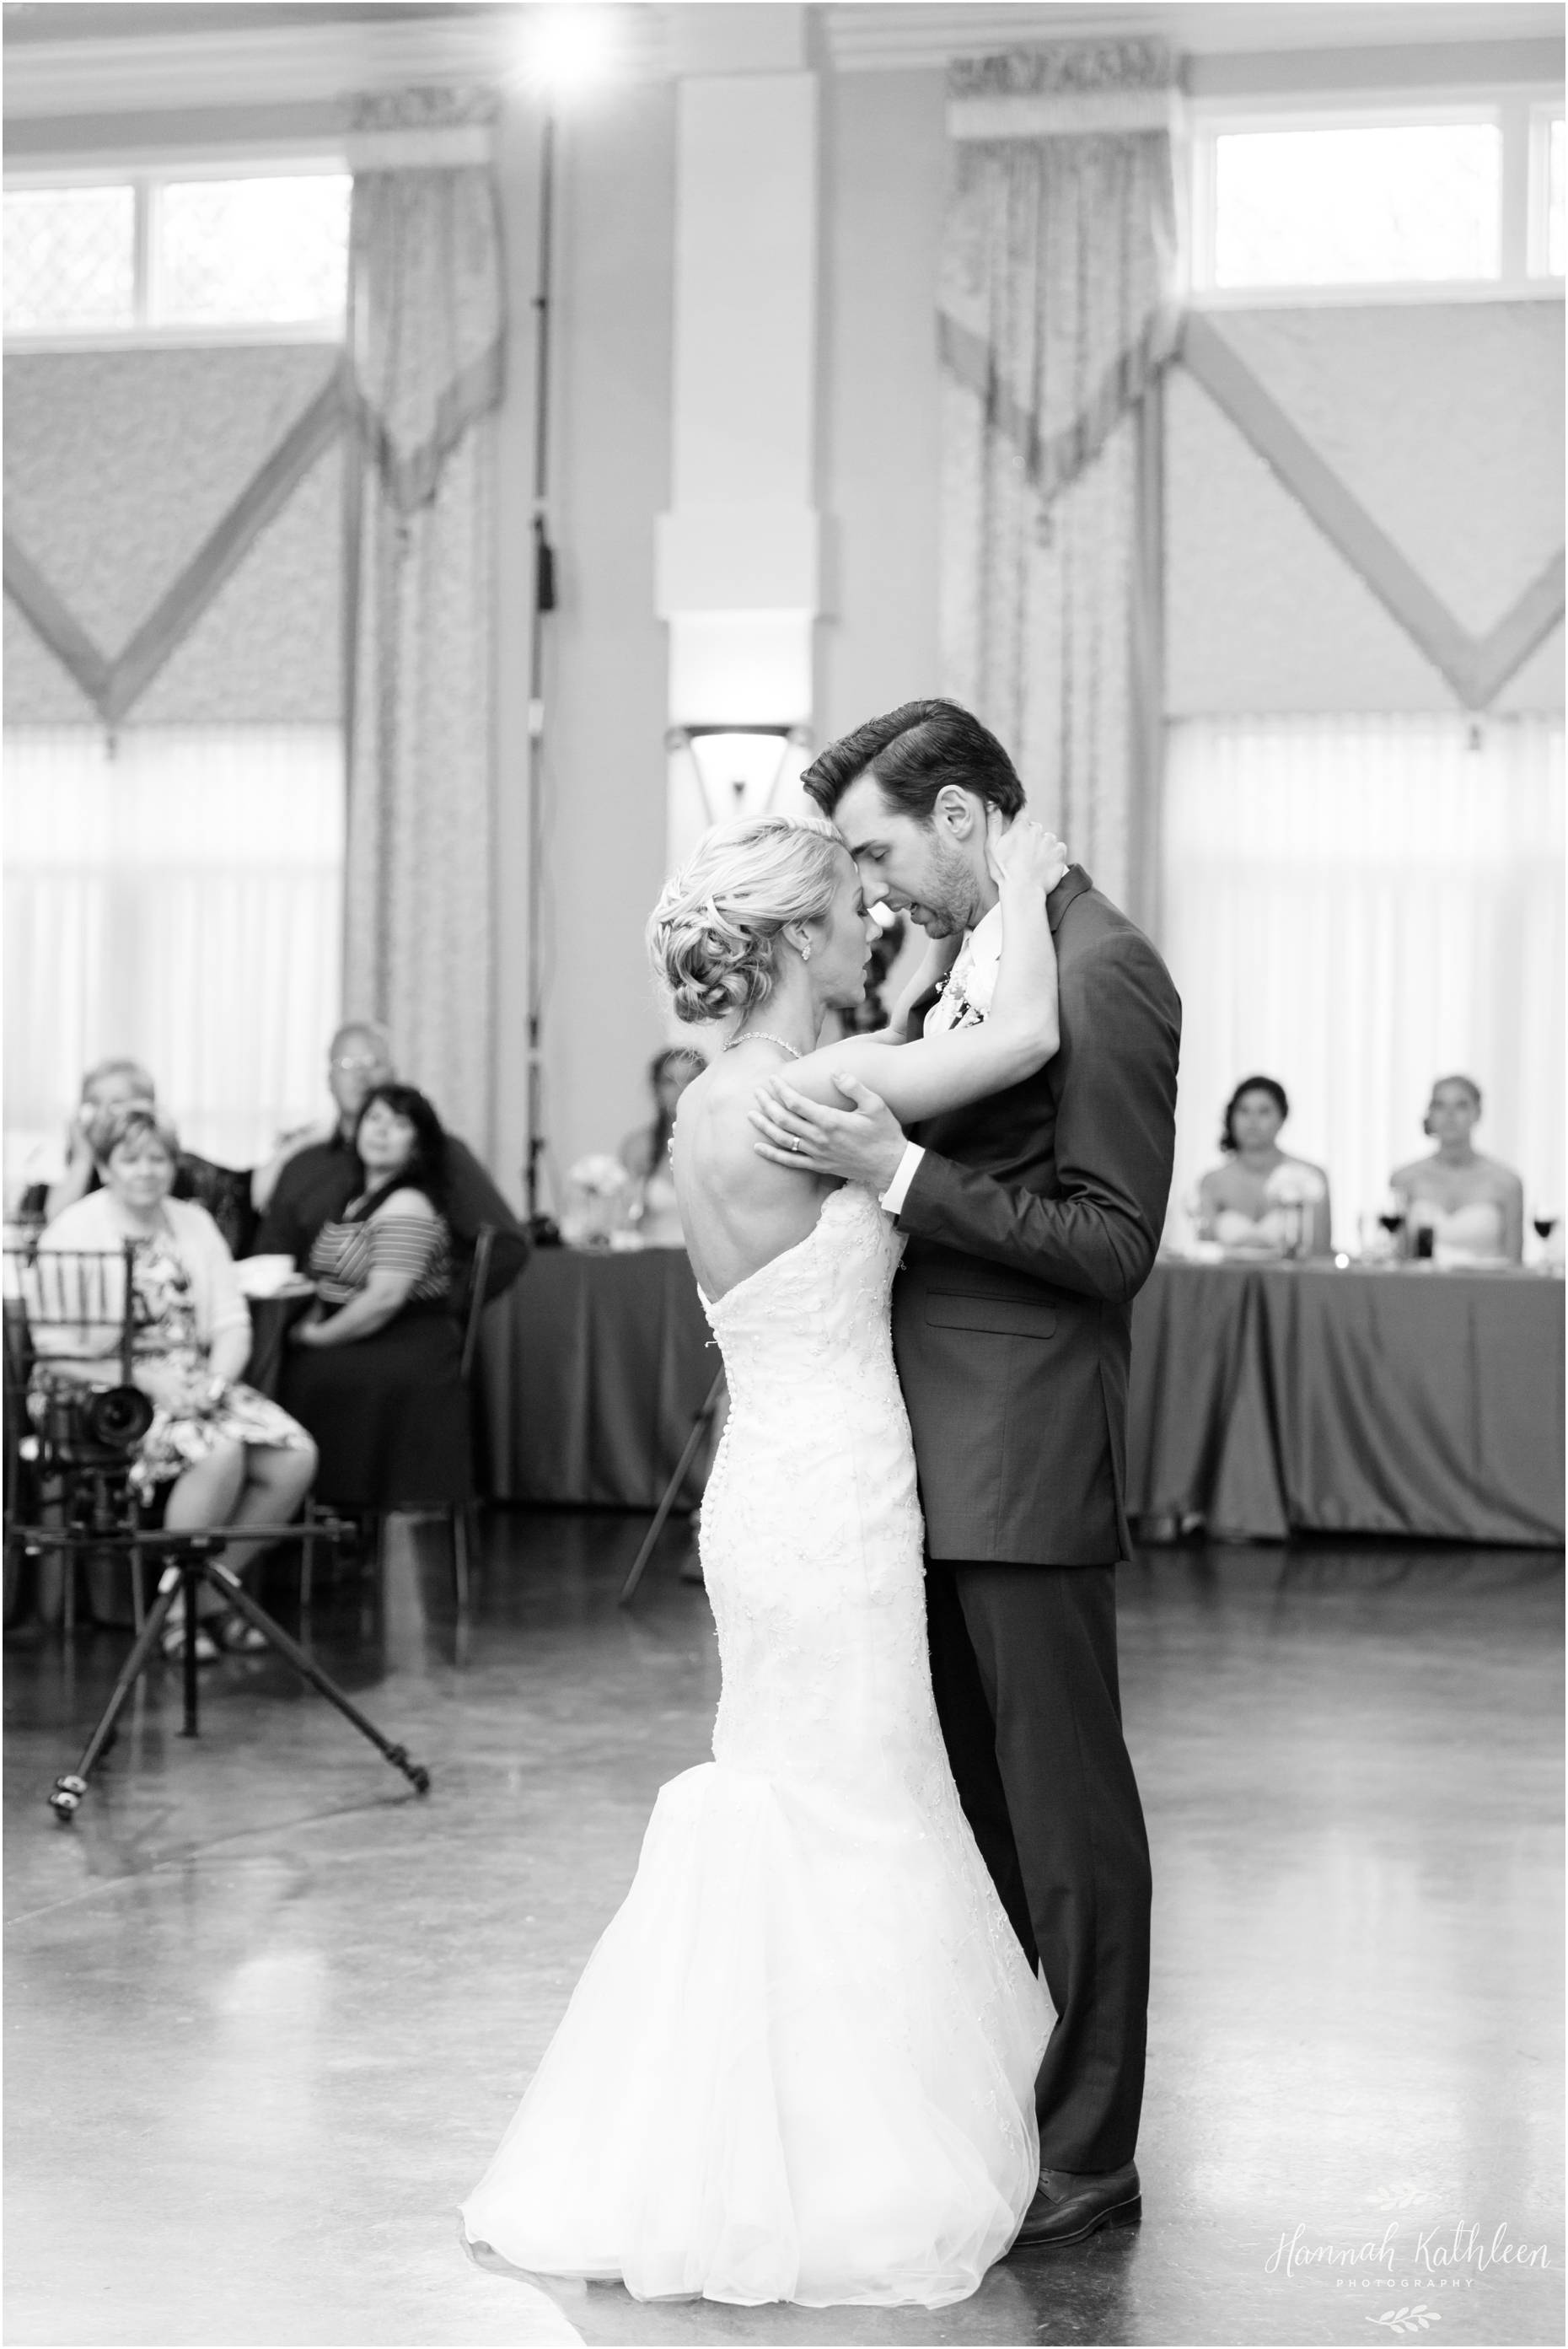 Zych_Buffalo_Wedding_Photographer_0108.jpg